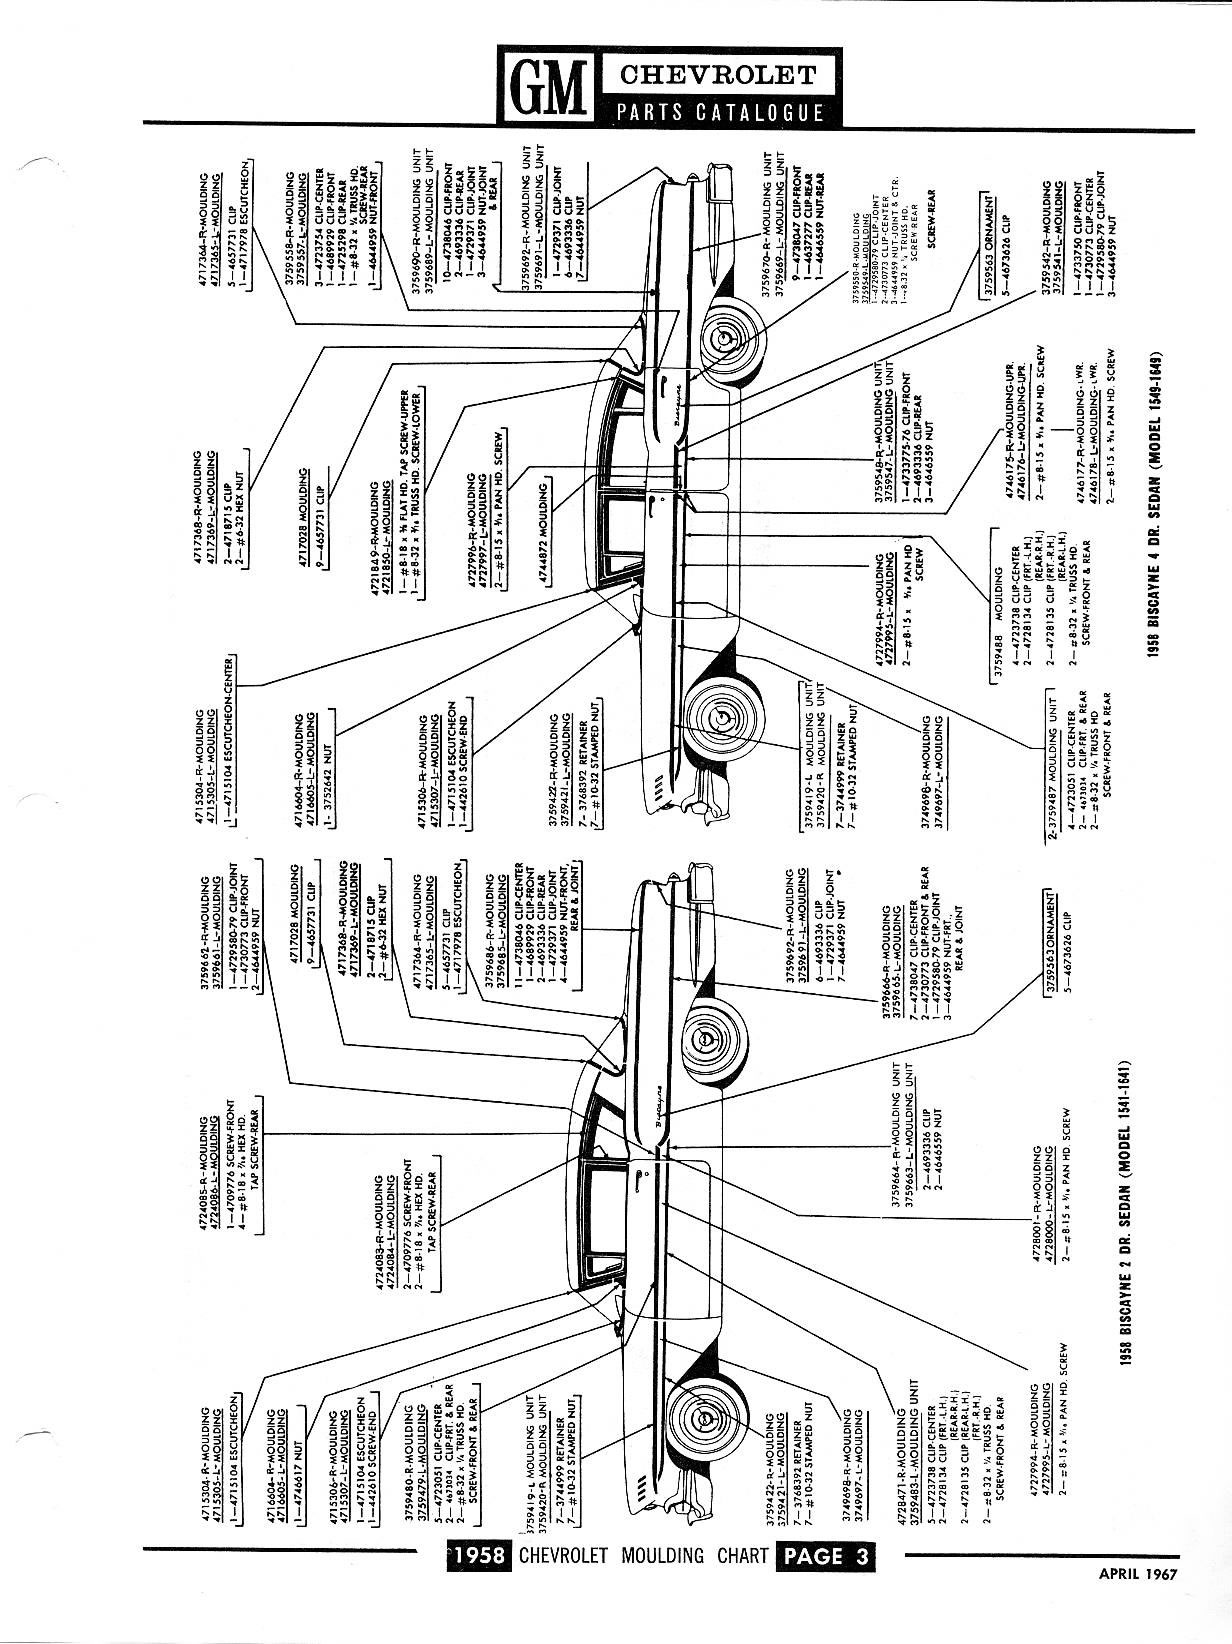 2004 honda cr v body parts diagram  honda  auto wiring diagram